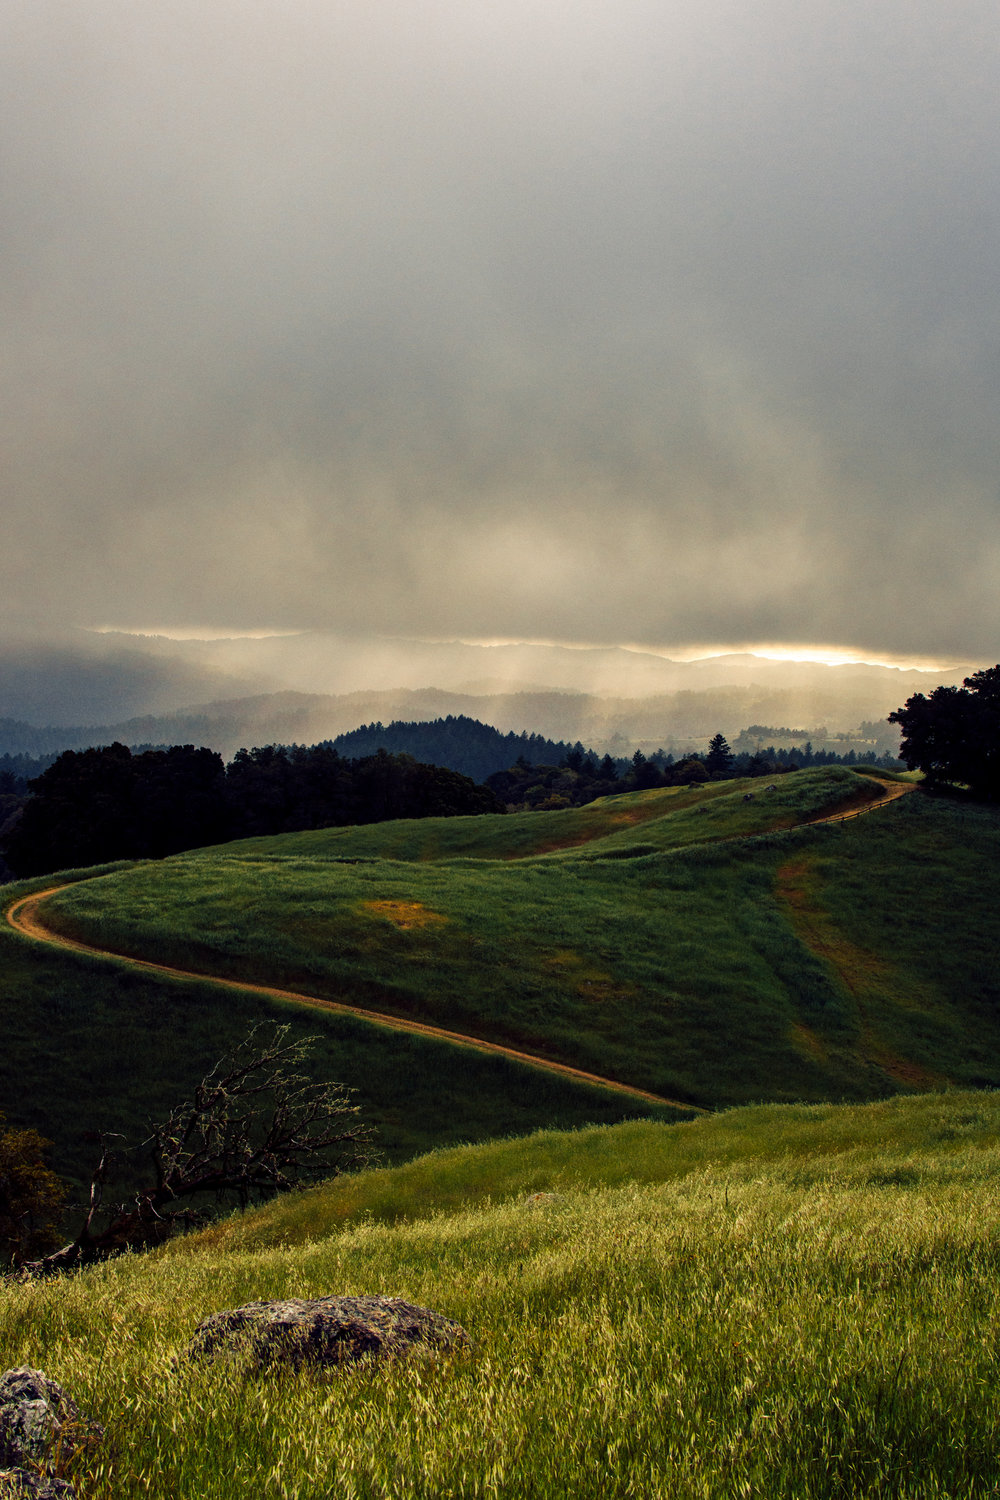 A quick shot from the top of the hill. I don't know exactly what the name of it is but it is off of Skyline Boulevard about 10 minutes north of the highway 9 intersection. I captured a good amount of sun rays before the clouds completely blocked out the sun from hitting the hills. Although in the distance I could still see the ocean being hit with the rays.